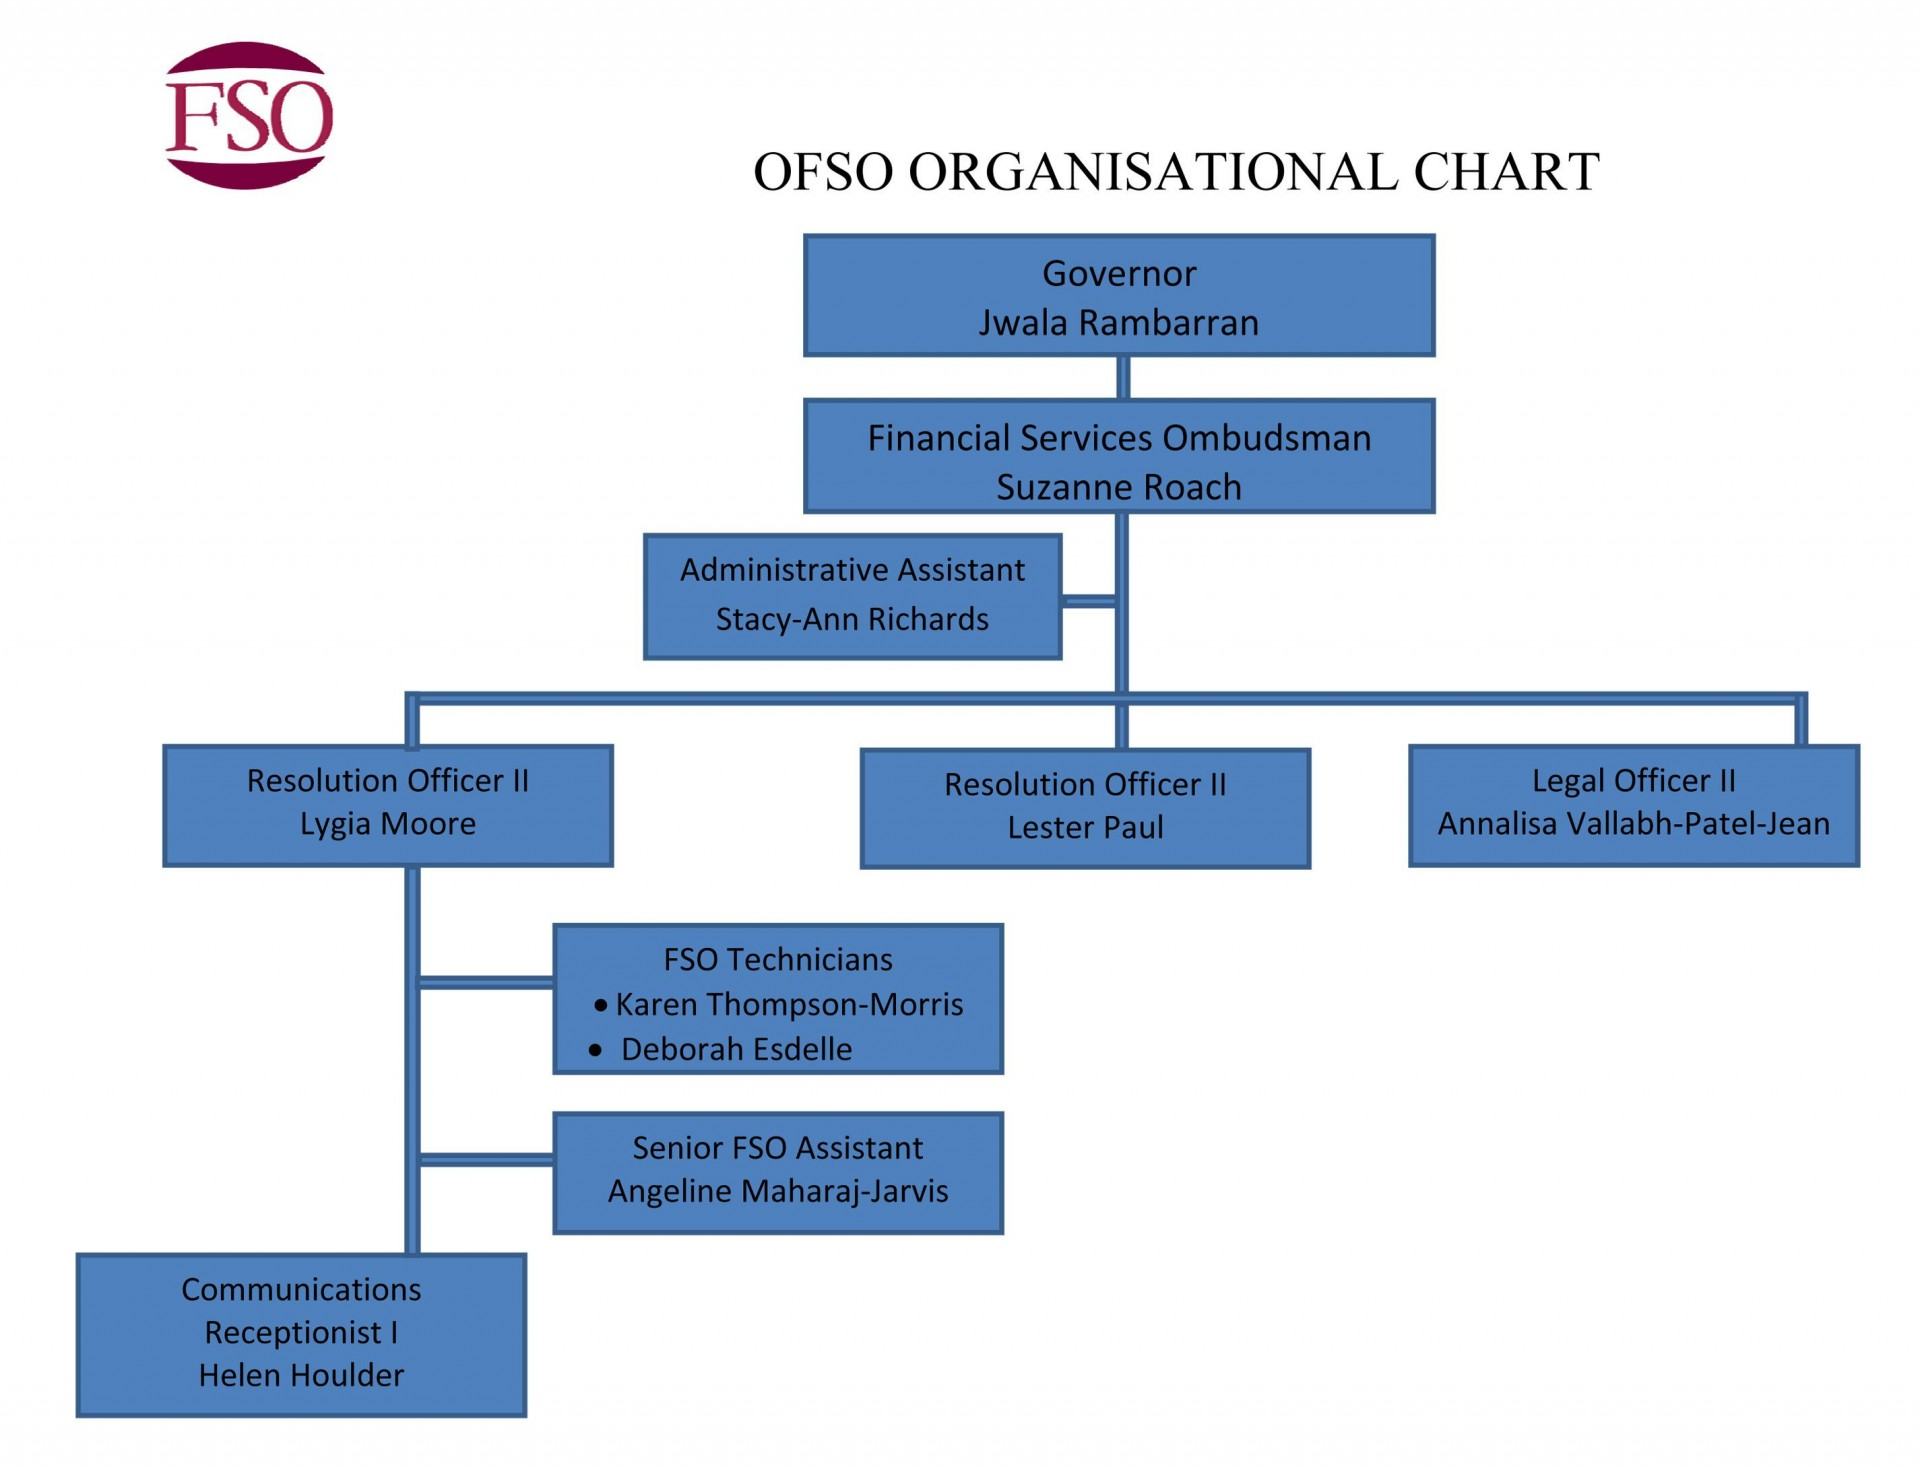 003 Unusual Organization Chart Template Word 2013 Idea  Organizational Free1920